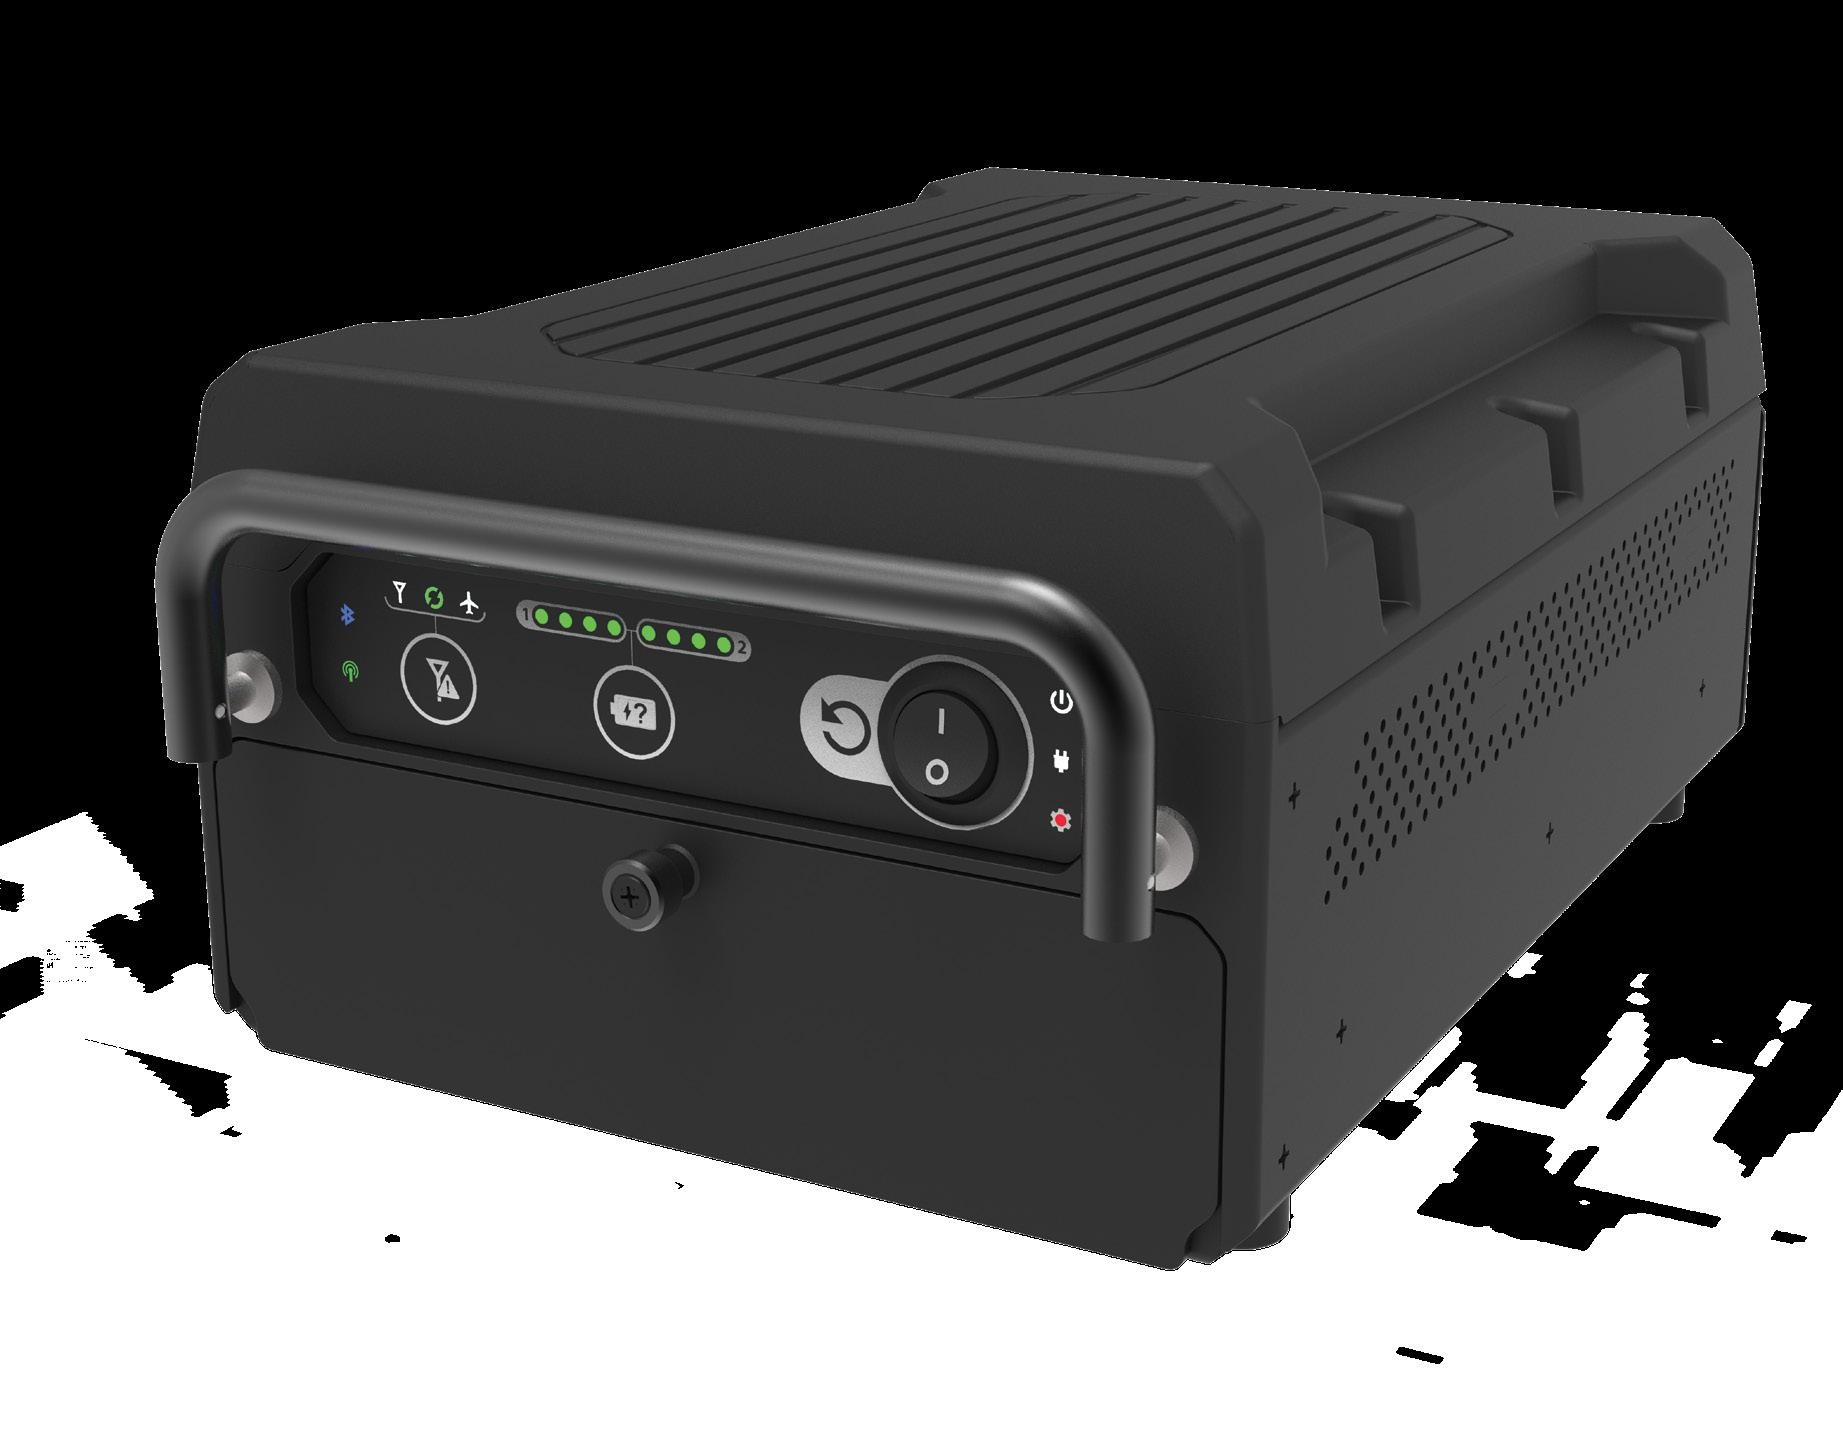 Page 36 of PORTABLE POWERHOUSE Producers of portable IFE need more than a rugged, reliable product and Astronics has sought to feed the all-important needs of airlines for a cost-effective nimble design in its award-winning Sierra solution